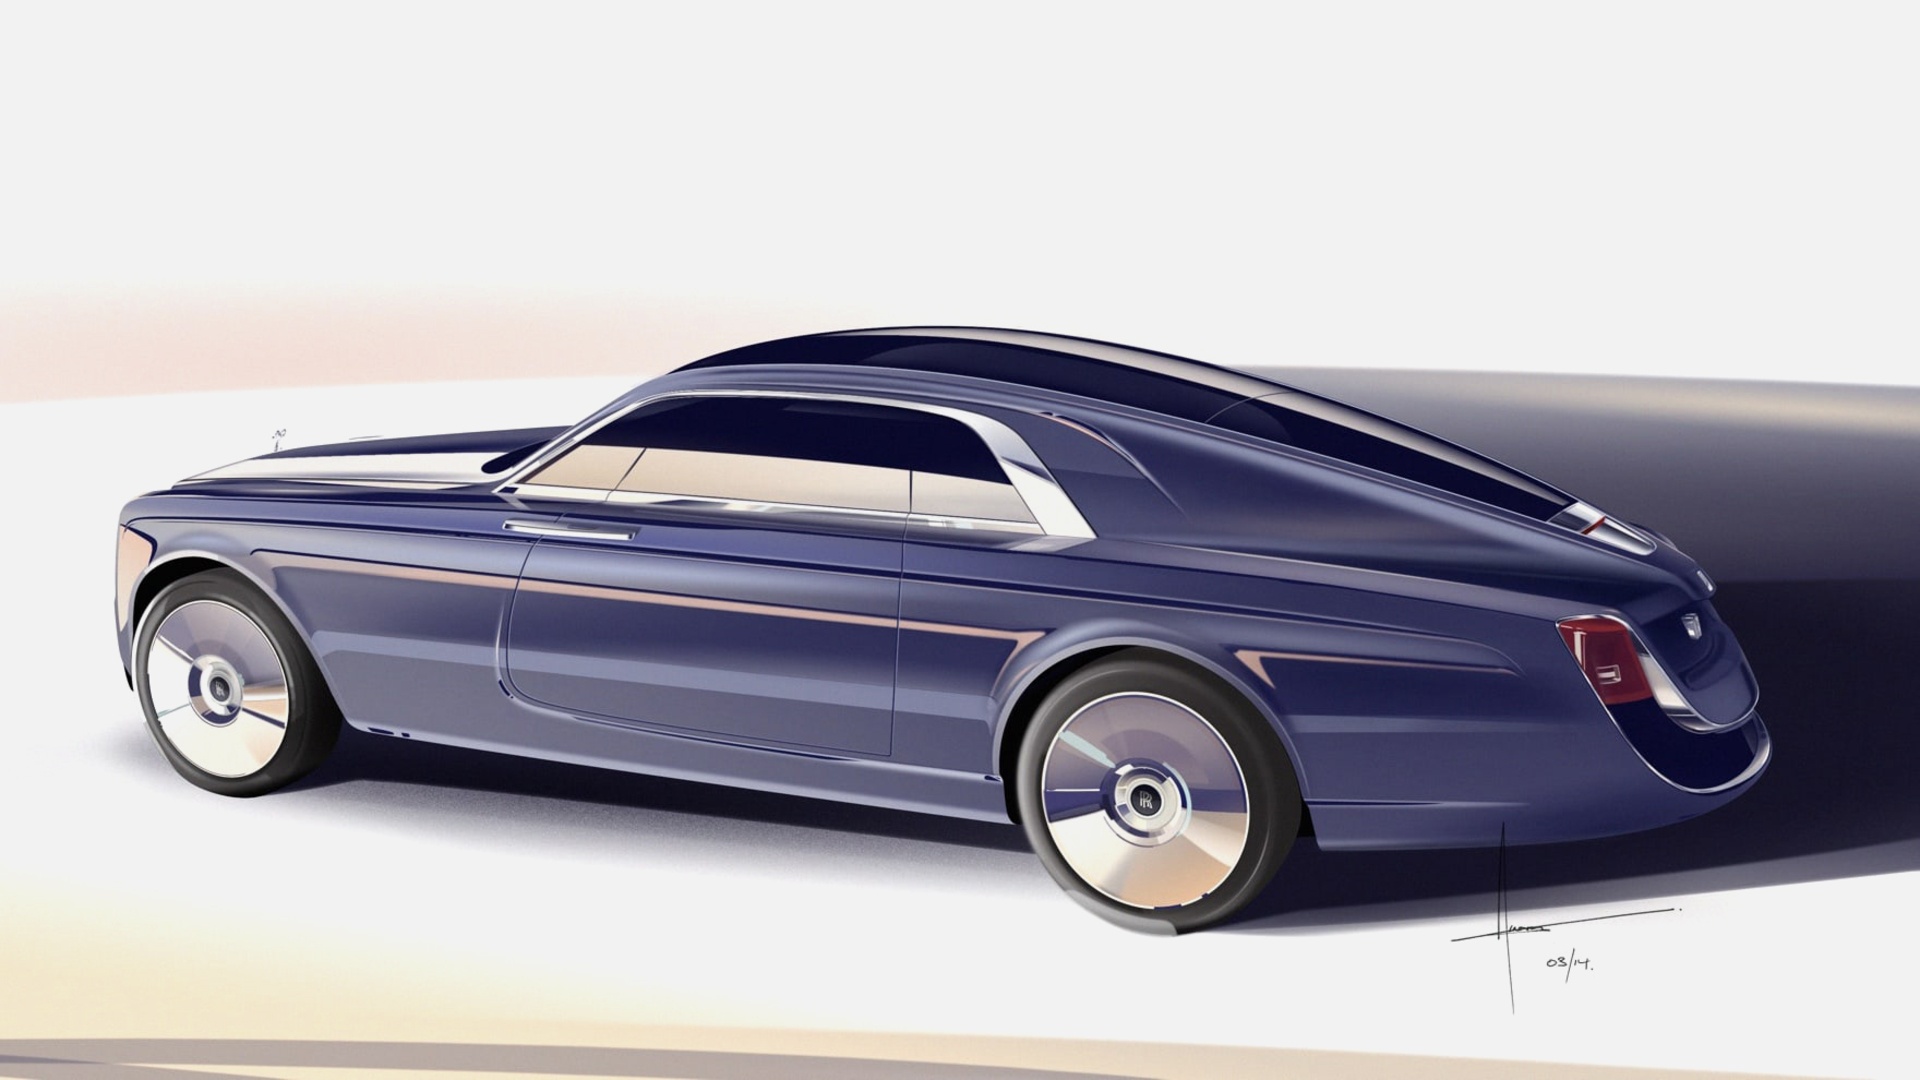 Rolls-Royce Swepttail side view